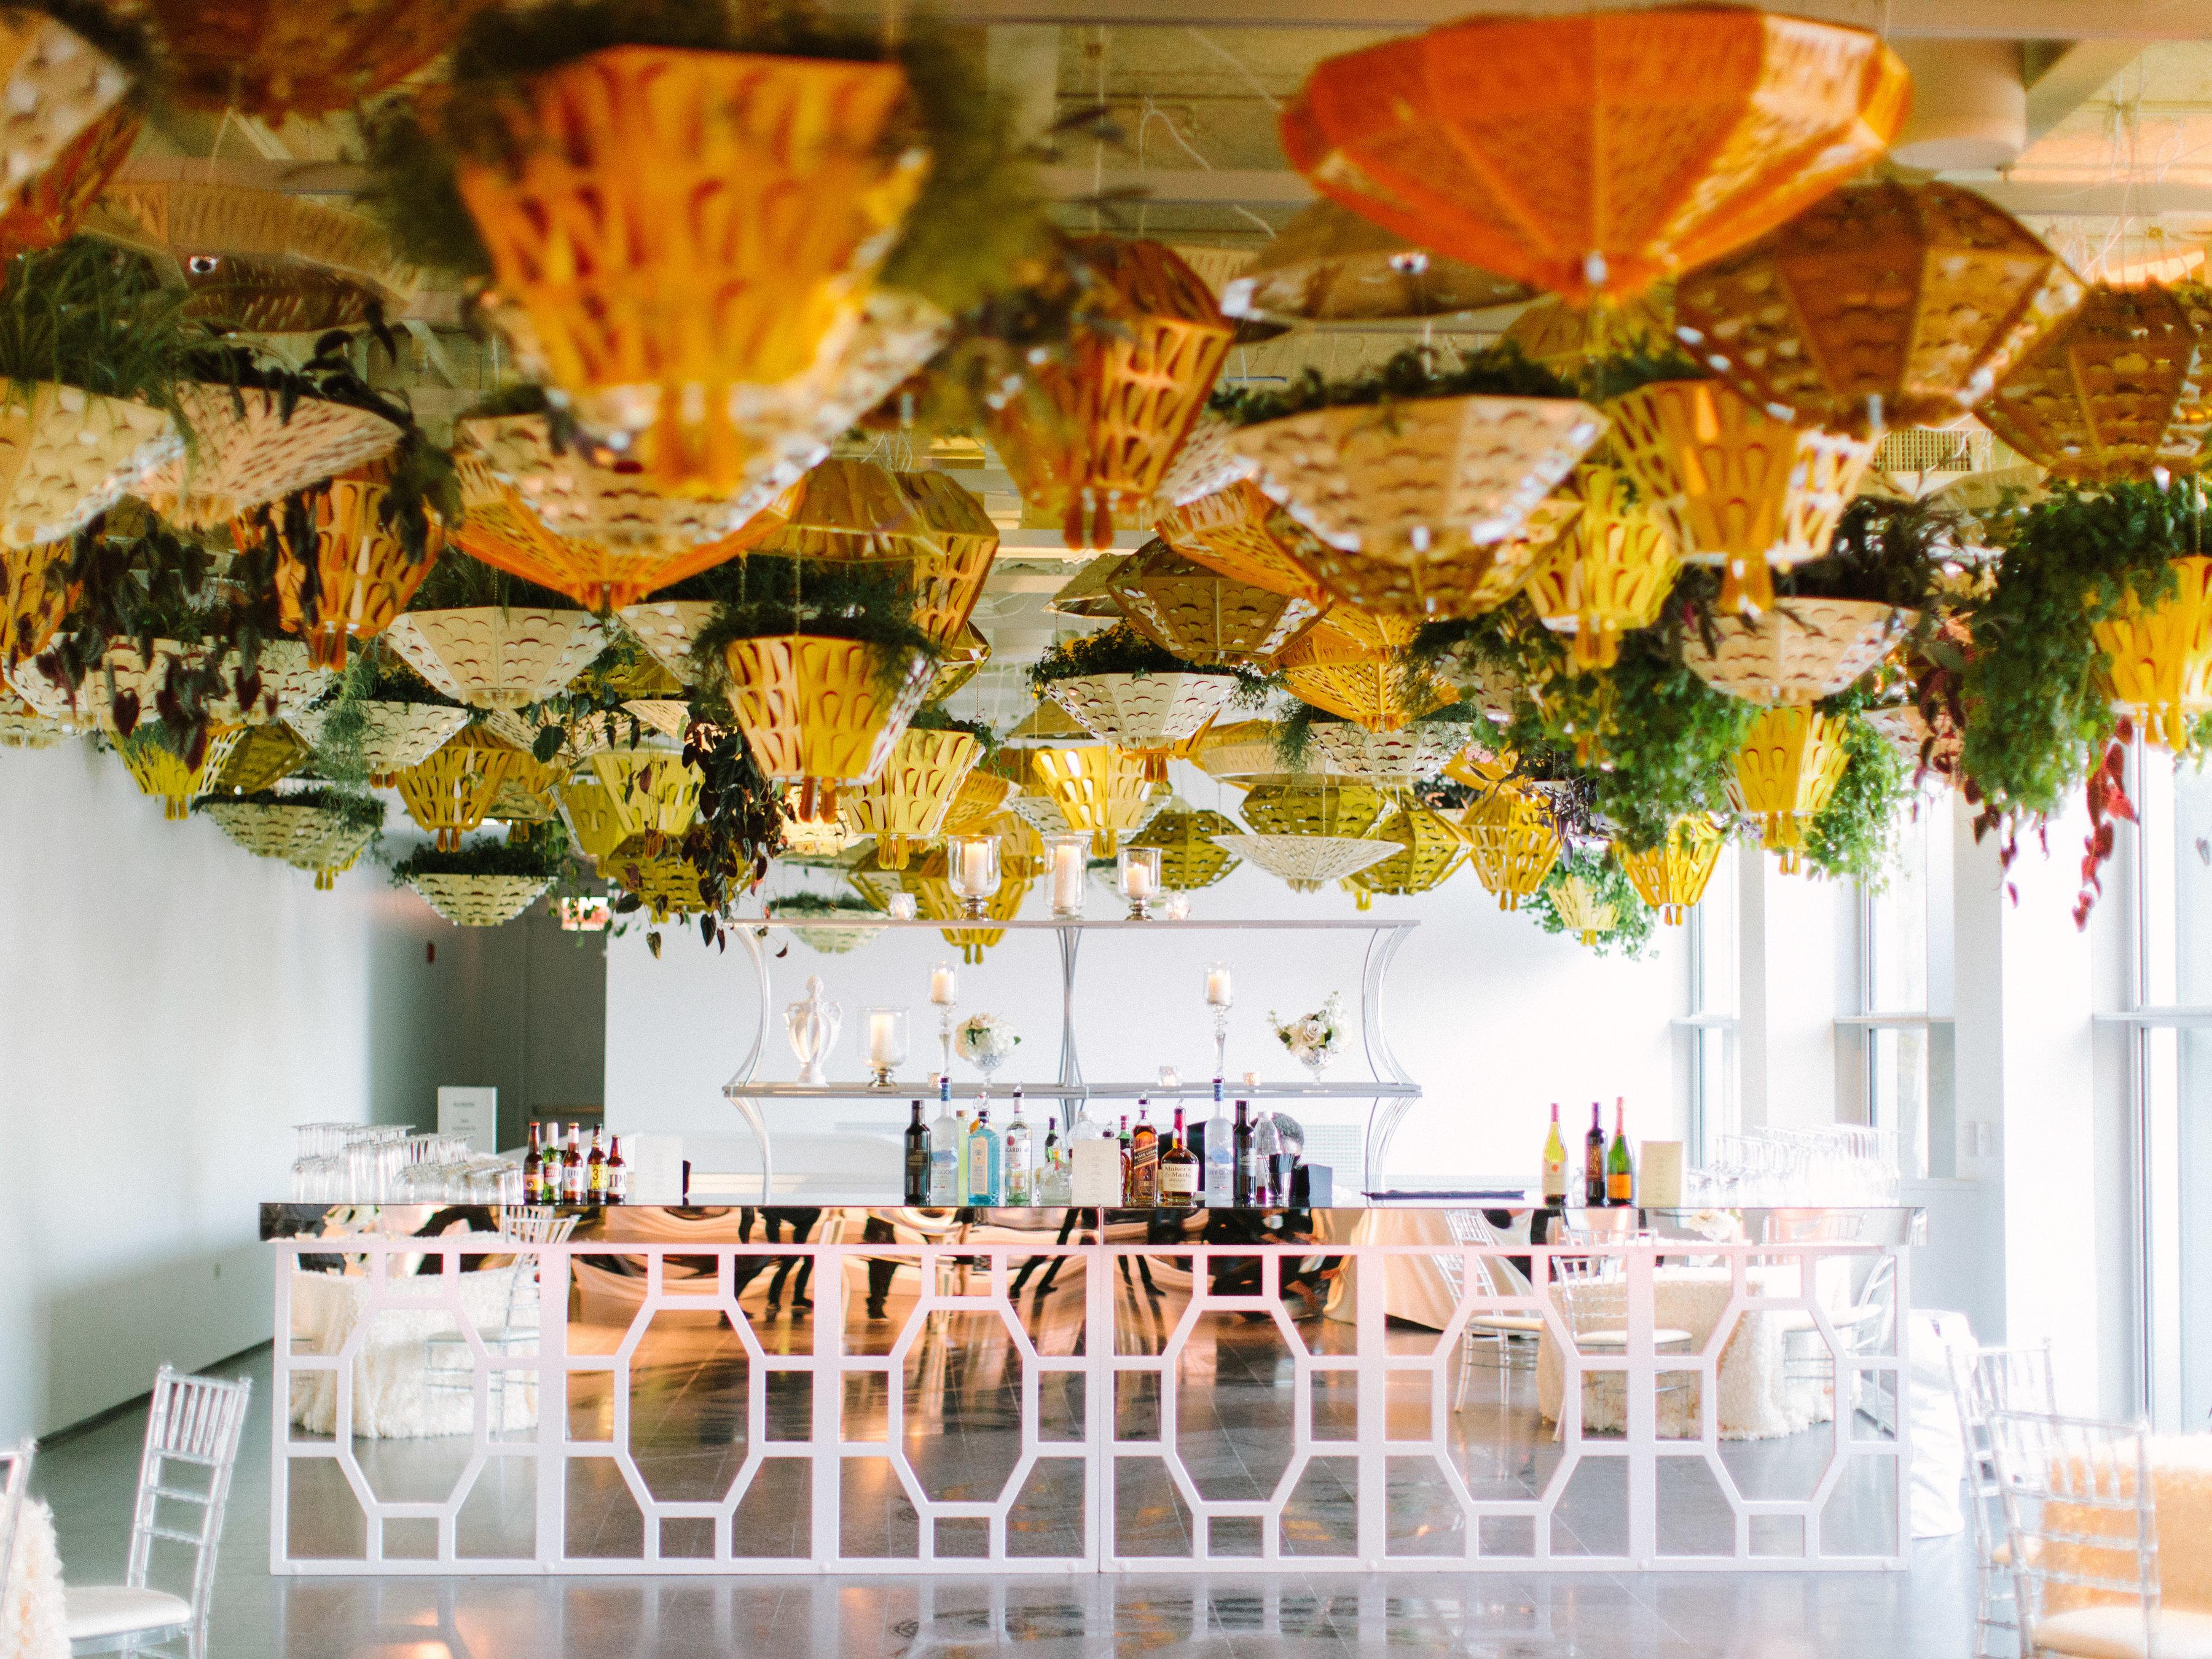 Bright light floods a room from a wall of windows. Vibrant, warm-colored planters hang above a well-stocked bar.